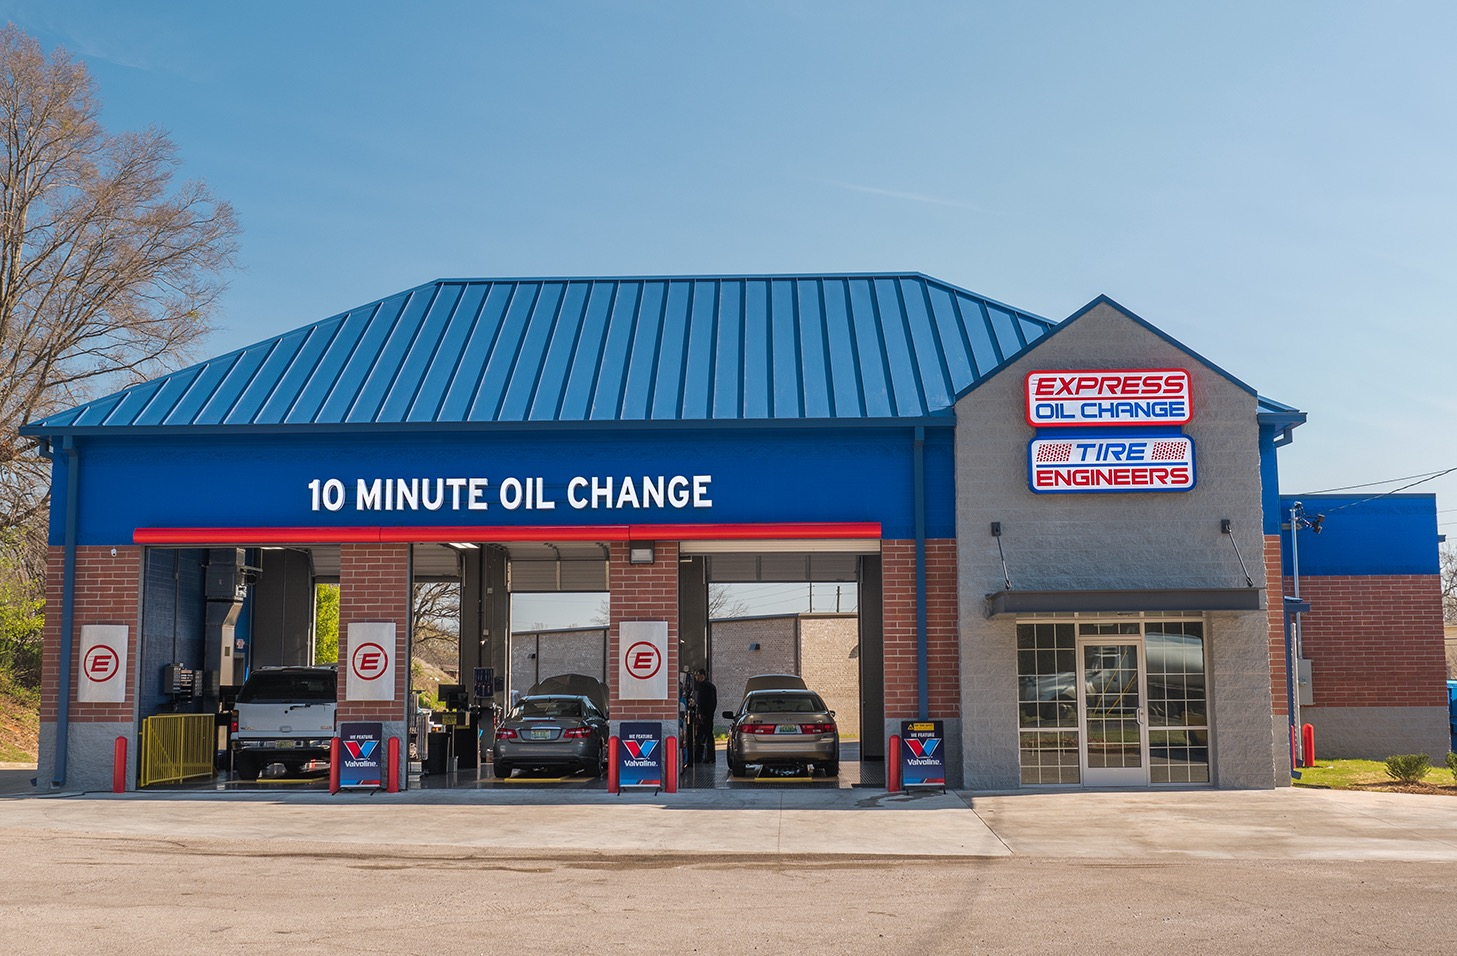 Express Oil Change & Tire Engineers Fairfield, AL store